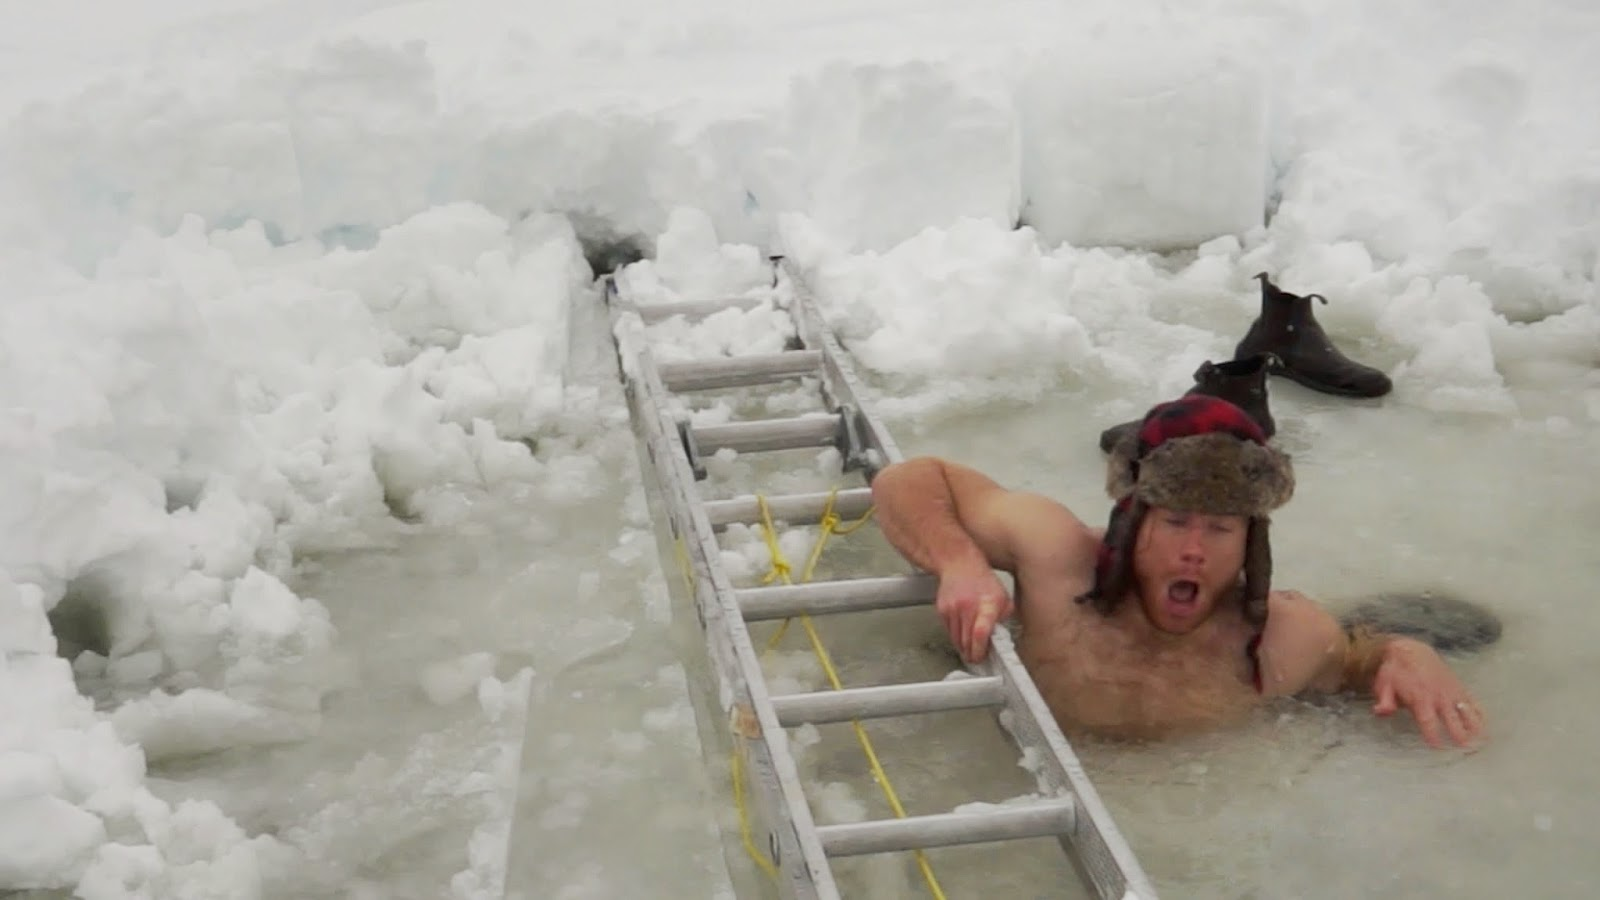 Cold water can keep your skin and hair looking good. (Photo: Captain Quinn/YouTube)